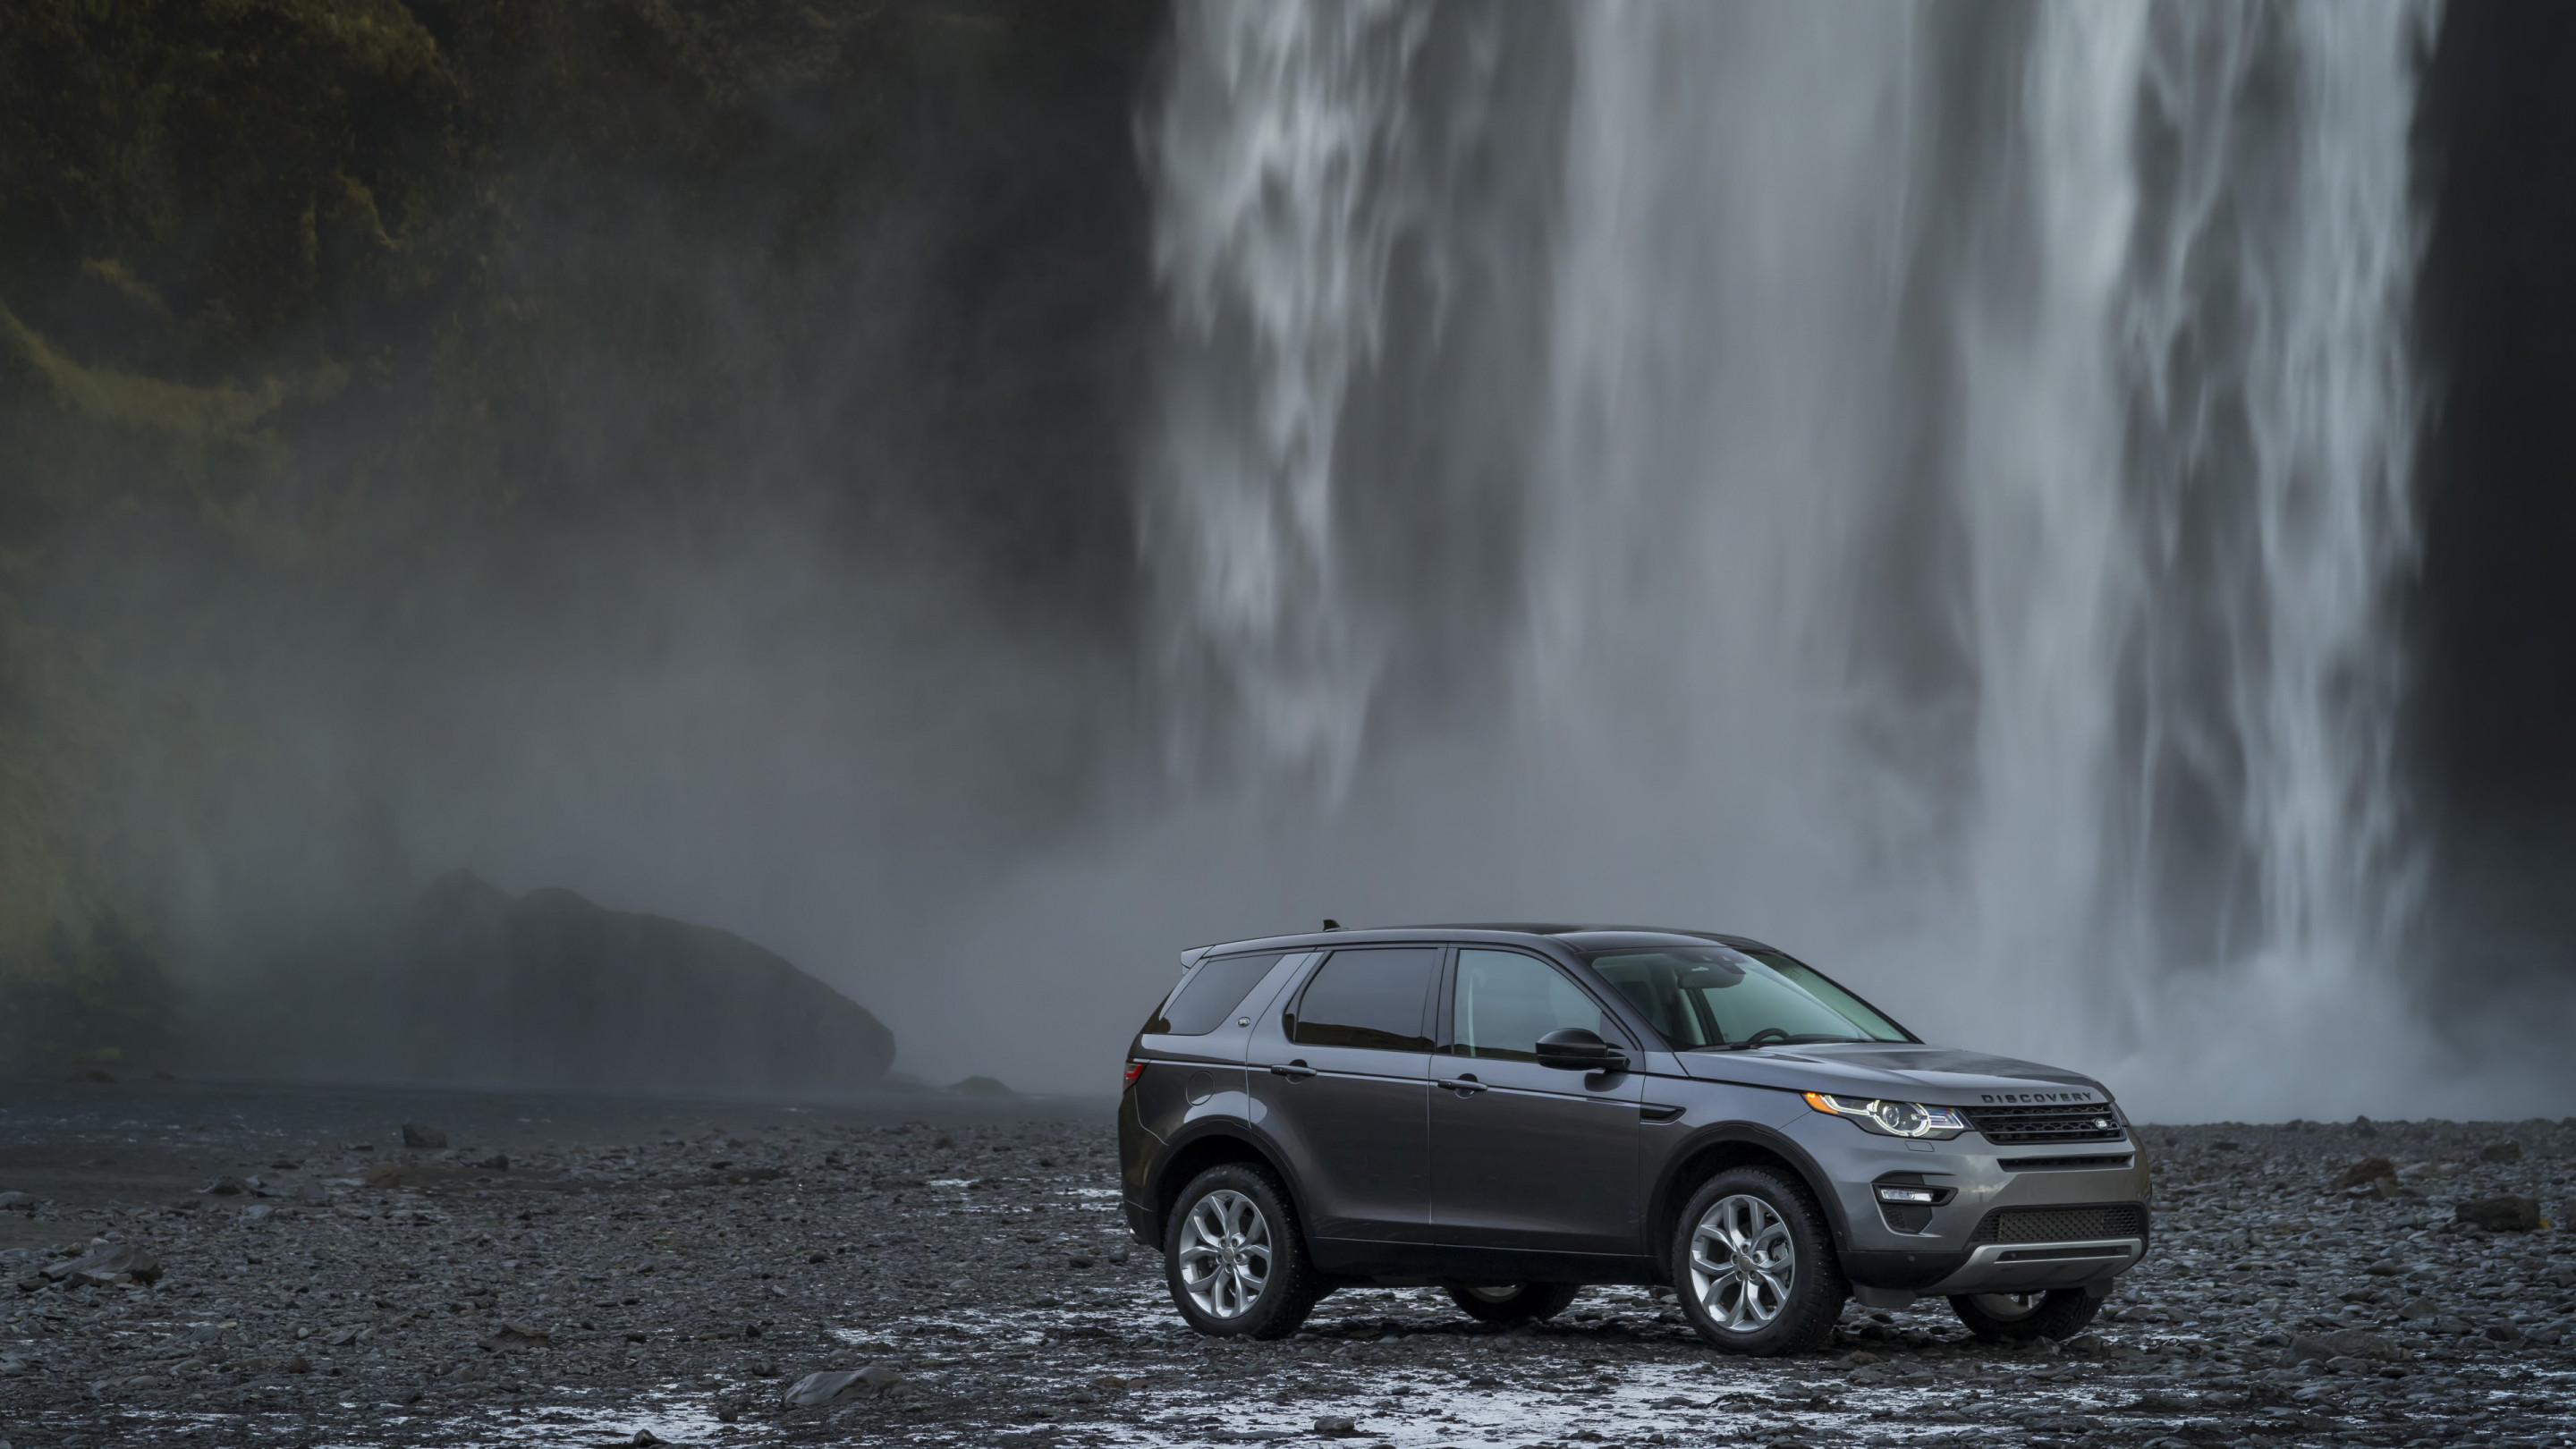 Land Rover Discovery Sport wallpaper 2880x1620